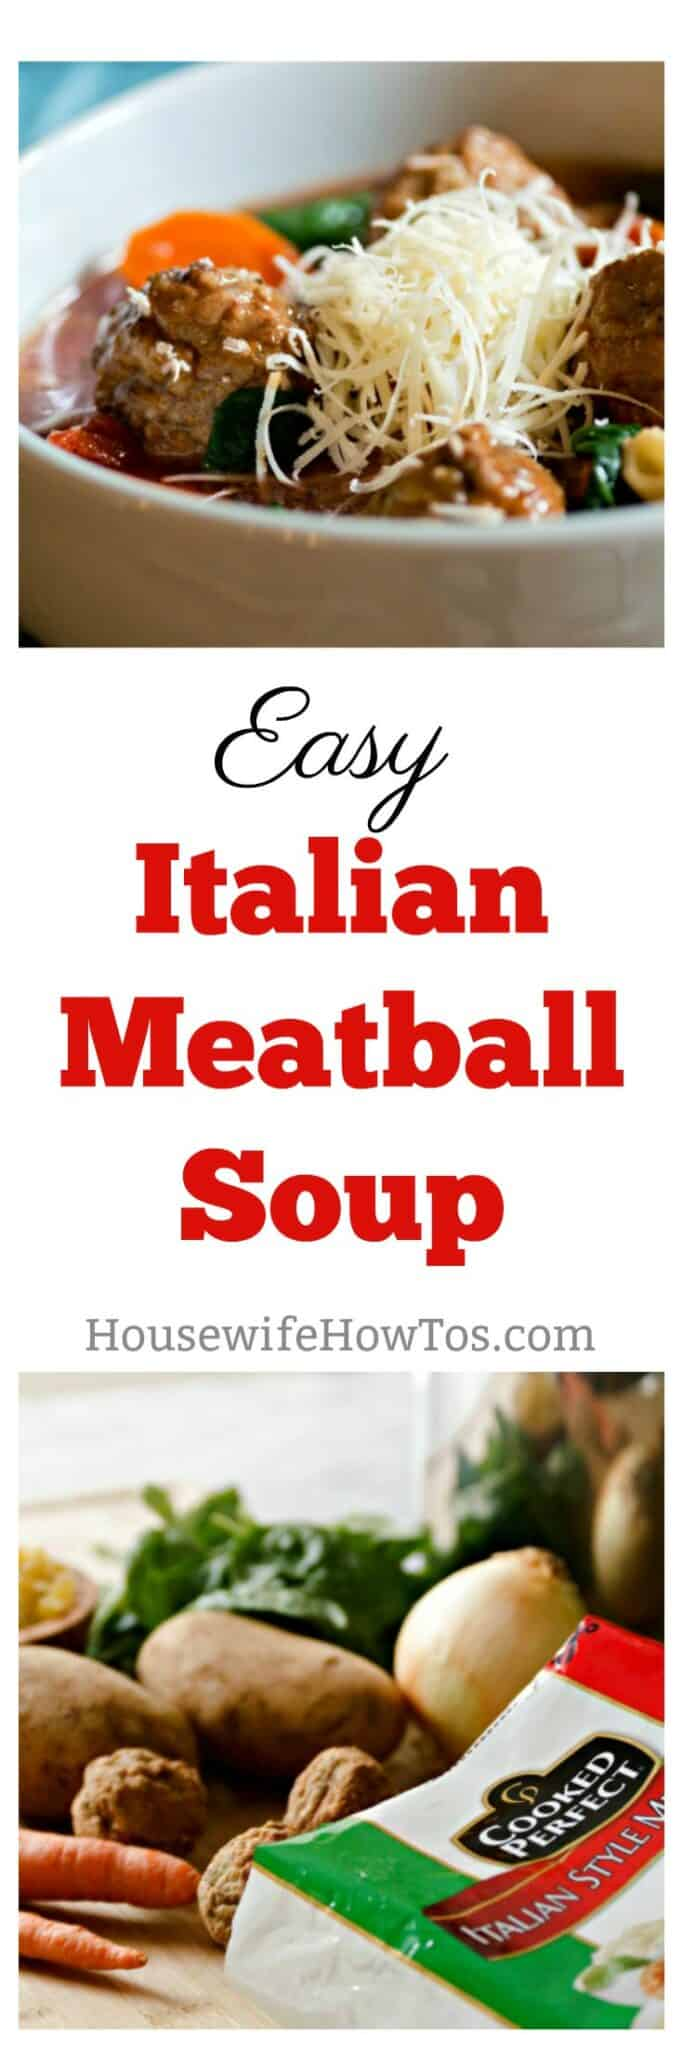 Easy Italian Meatball Soup A hearty serving of vegetables and tender meatballs in a rich tomato broth that is easy enough for weeknights #sponsored